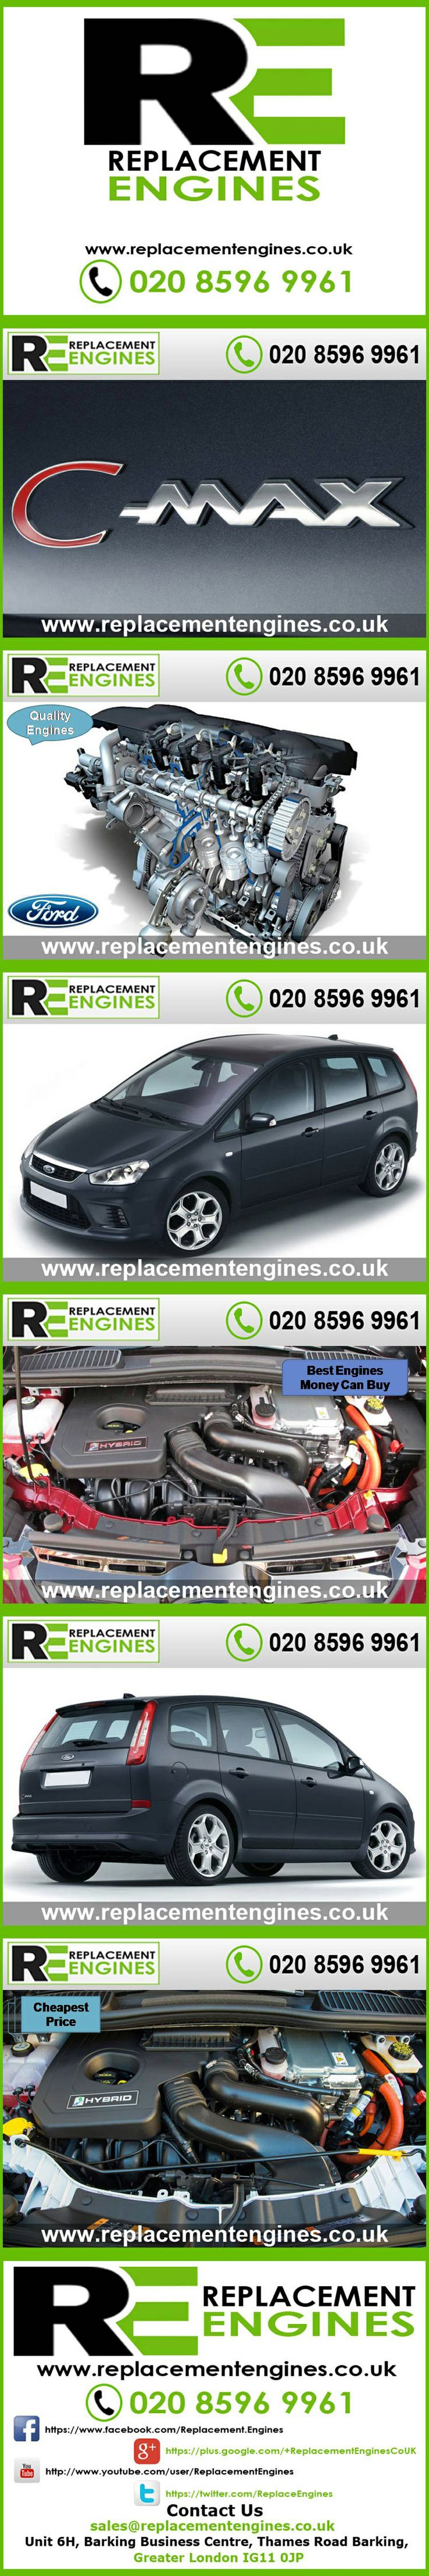 Ford C-Max Engines for sale at the cheapest prices, we have low mileage used & reconditioned engines in stock now, ready to be delivered to anywhere in the UK or overseas, visit Replacement Engines website here.  http://www.replacementengines.co.uk/car-md.asp?part=all-ford-cmax-engine&mo_id=32156